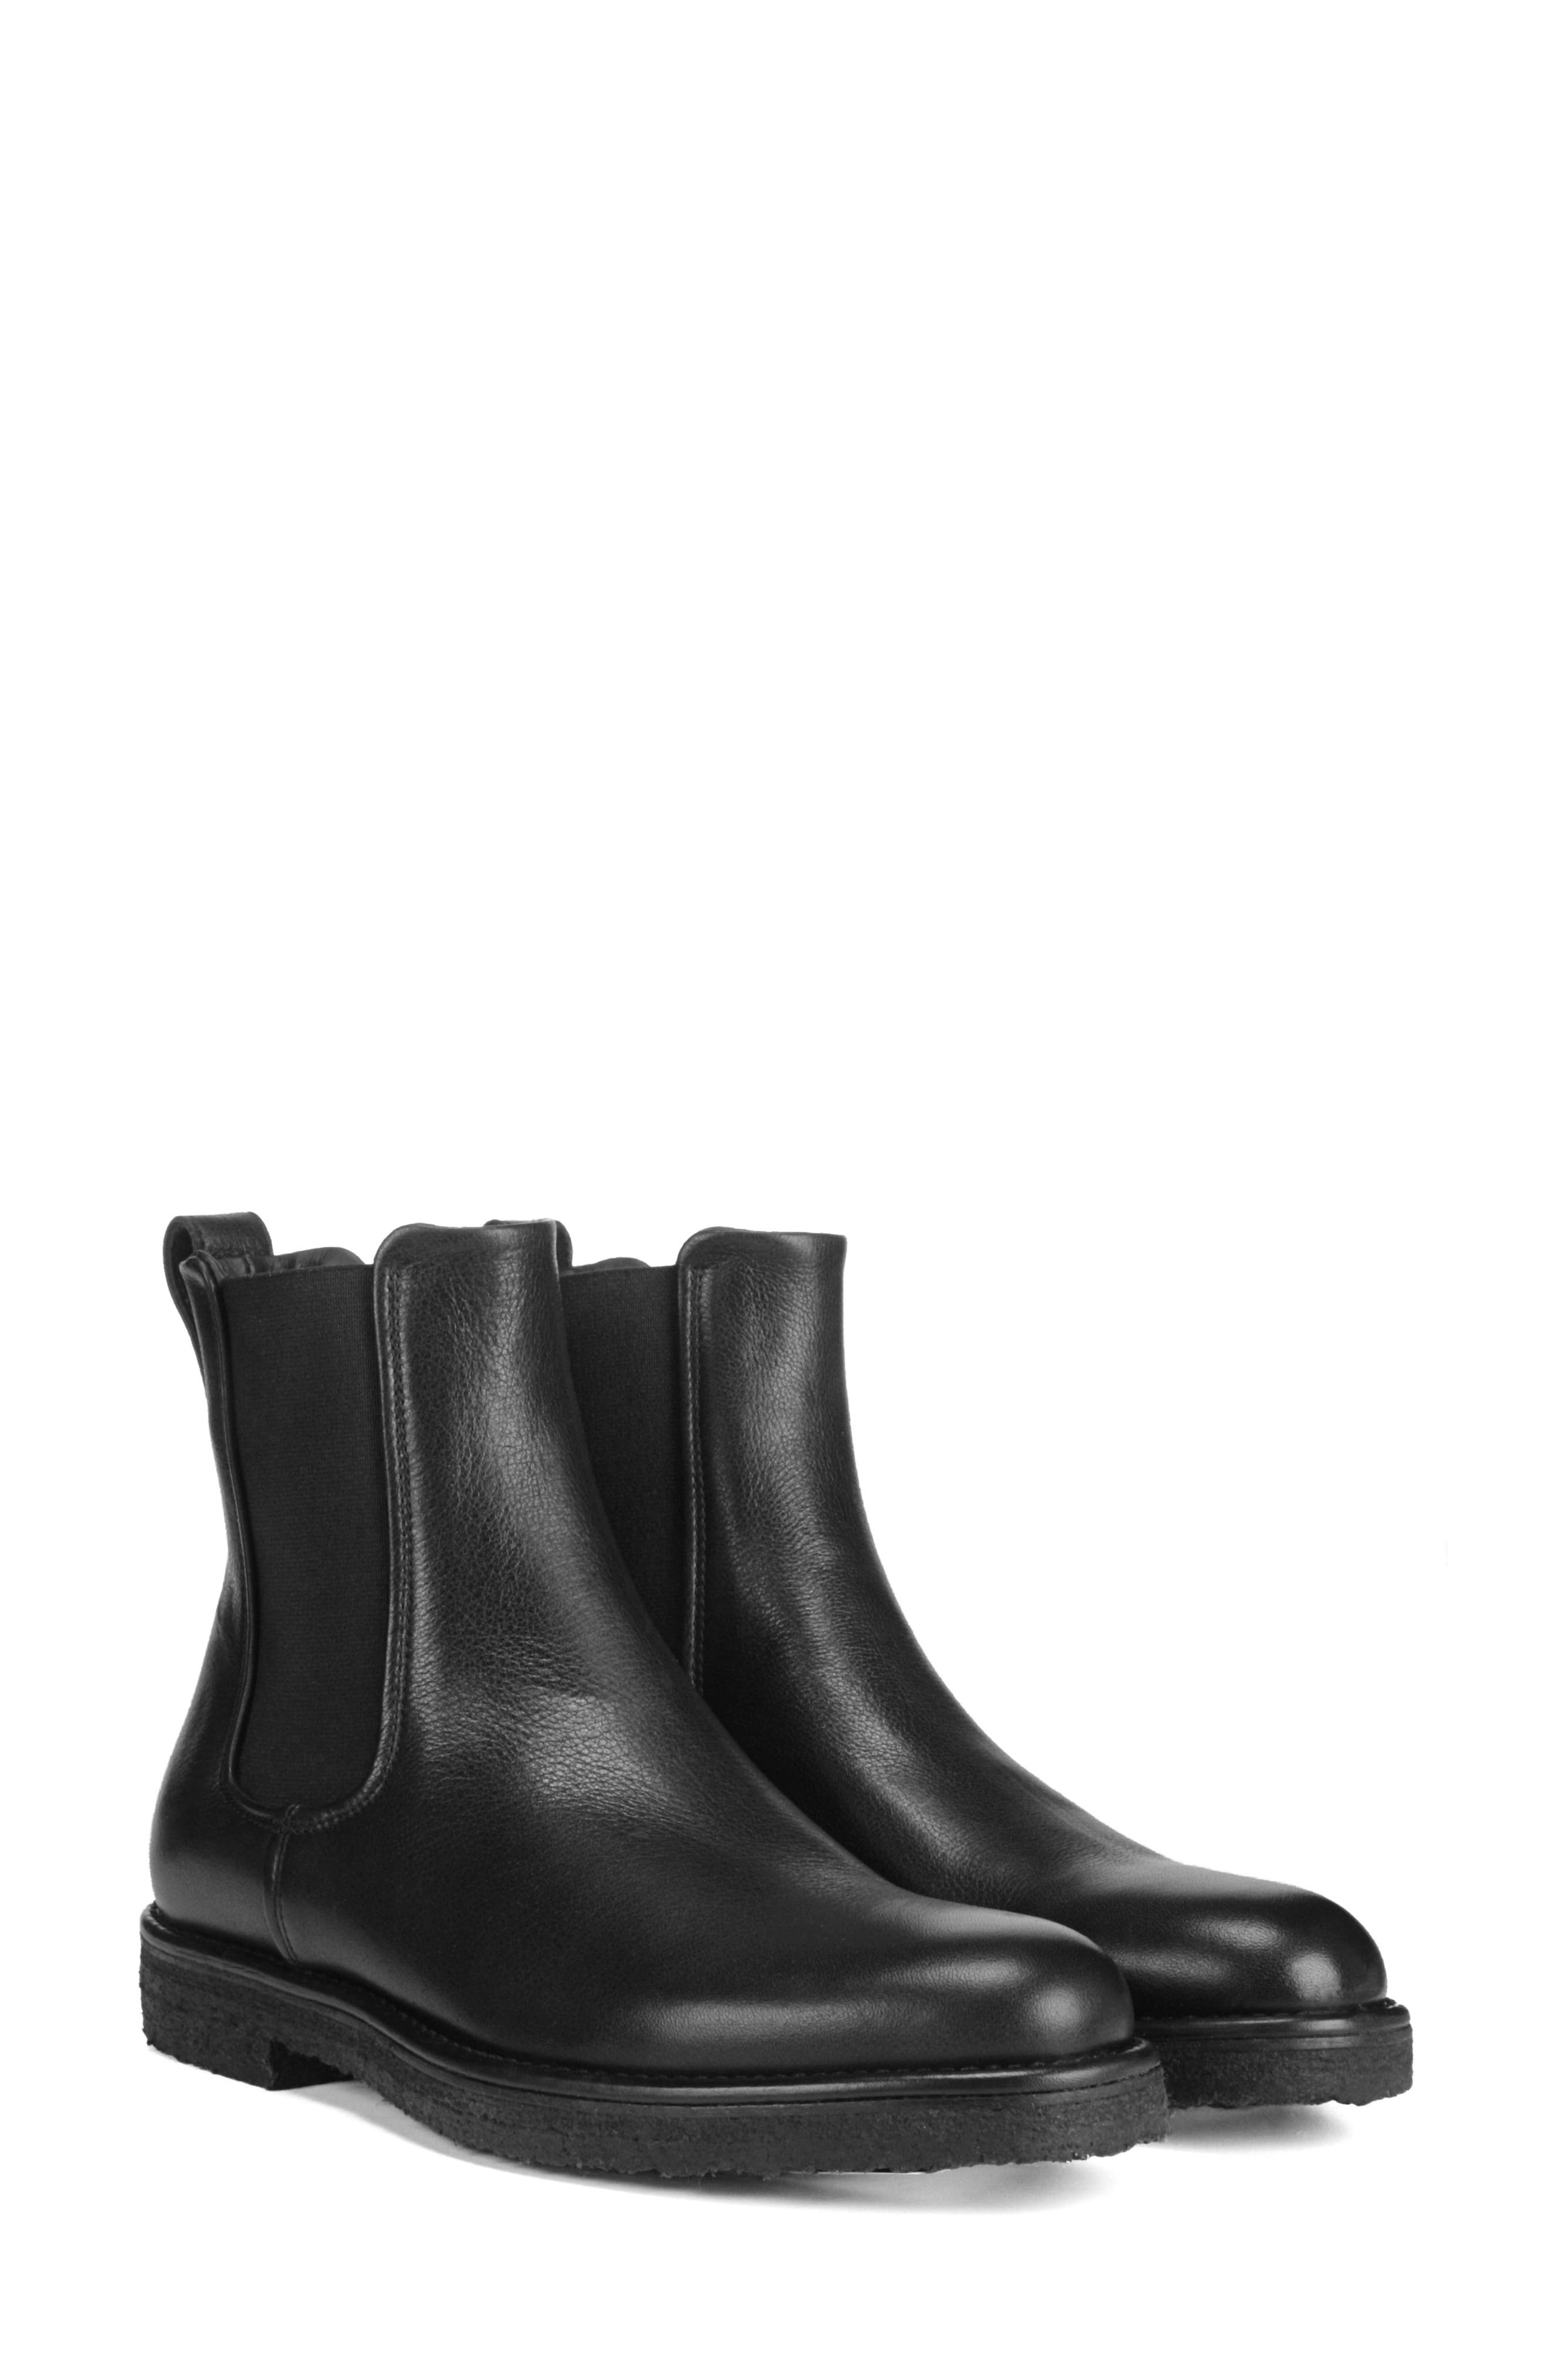 Cressler Chelsea Bootie,                             Alternate thumbnail 7, color,                             001